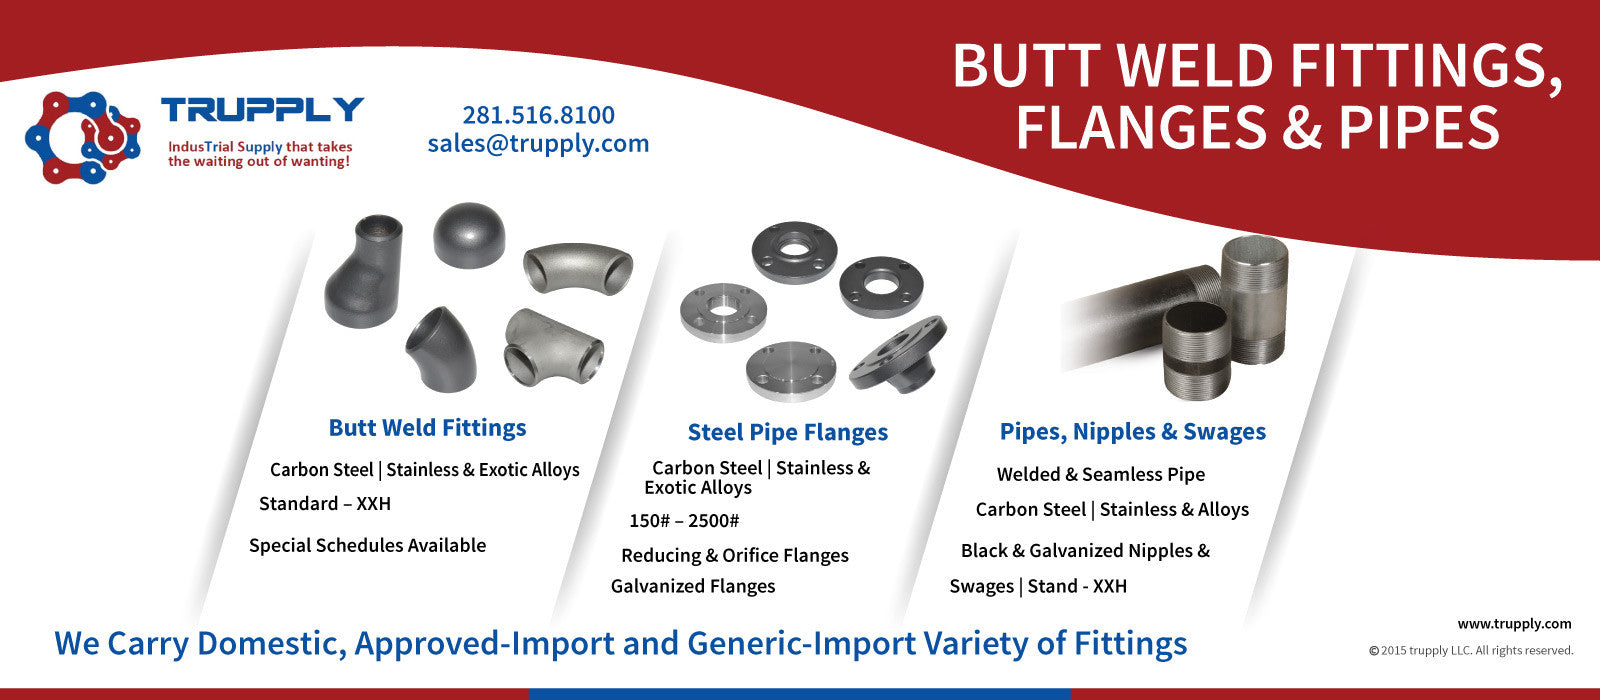 Dresser Couplings, Pipes, Tubes, Flanges, Fittings